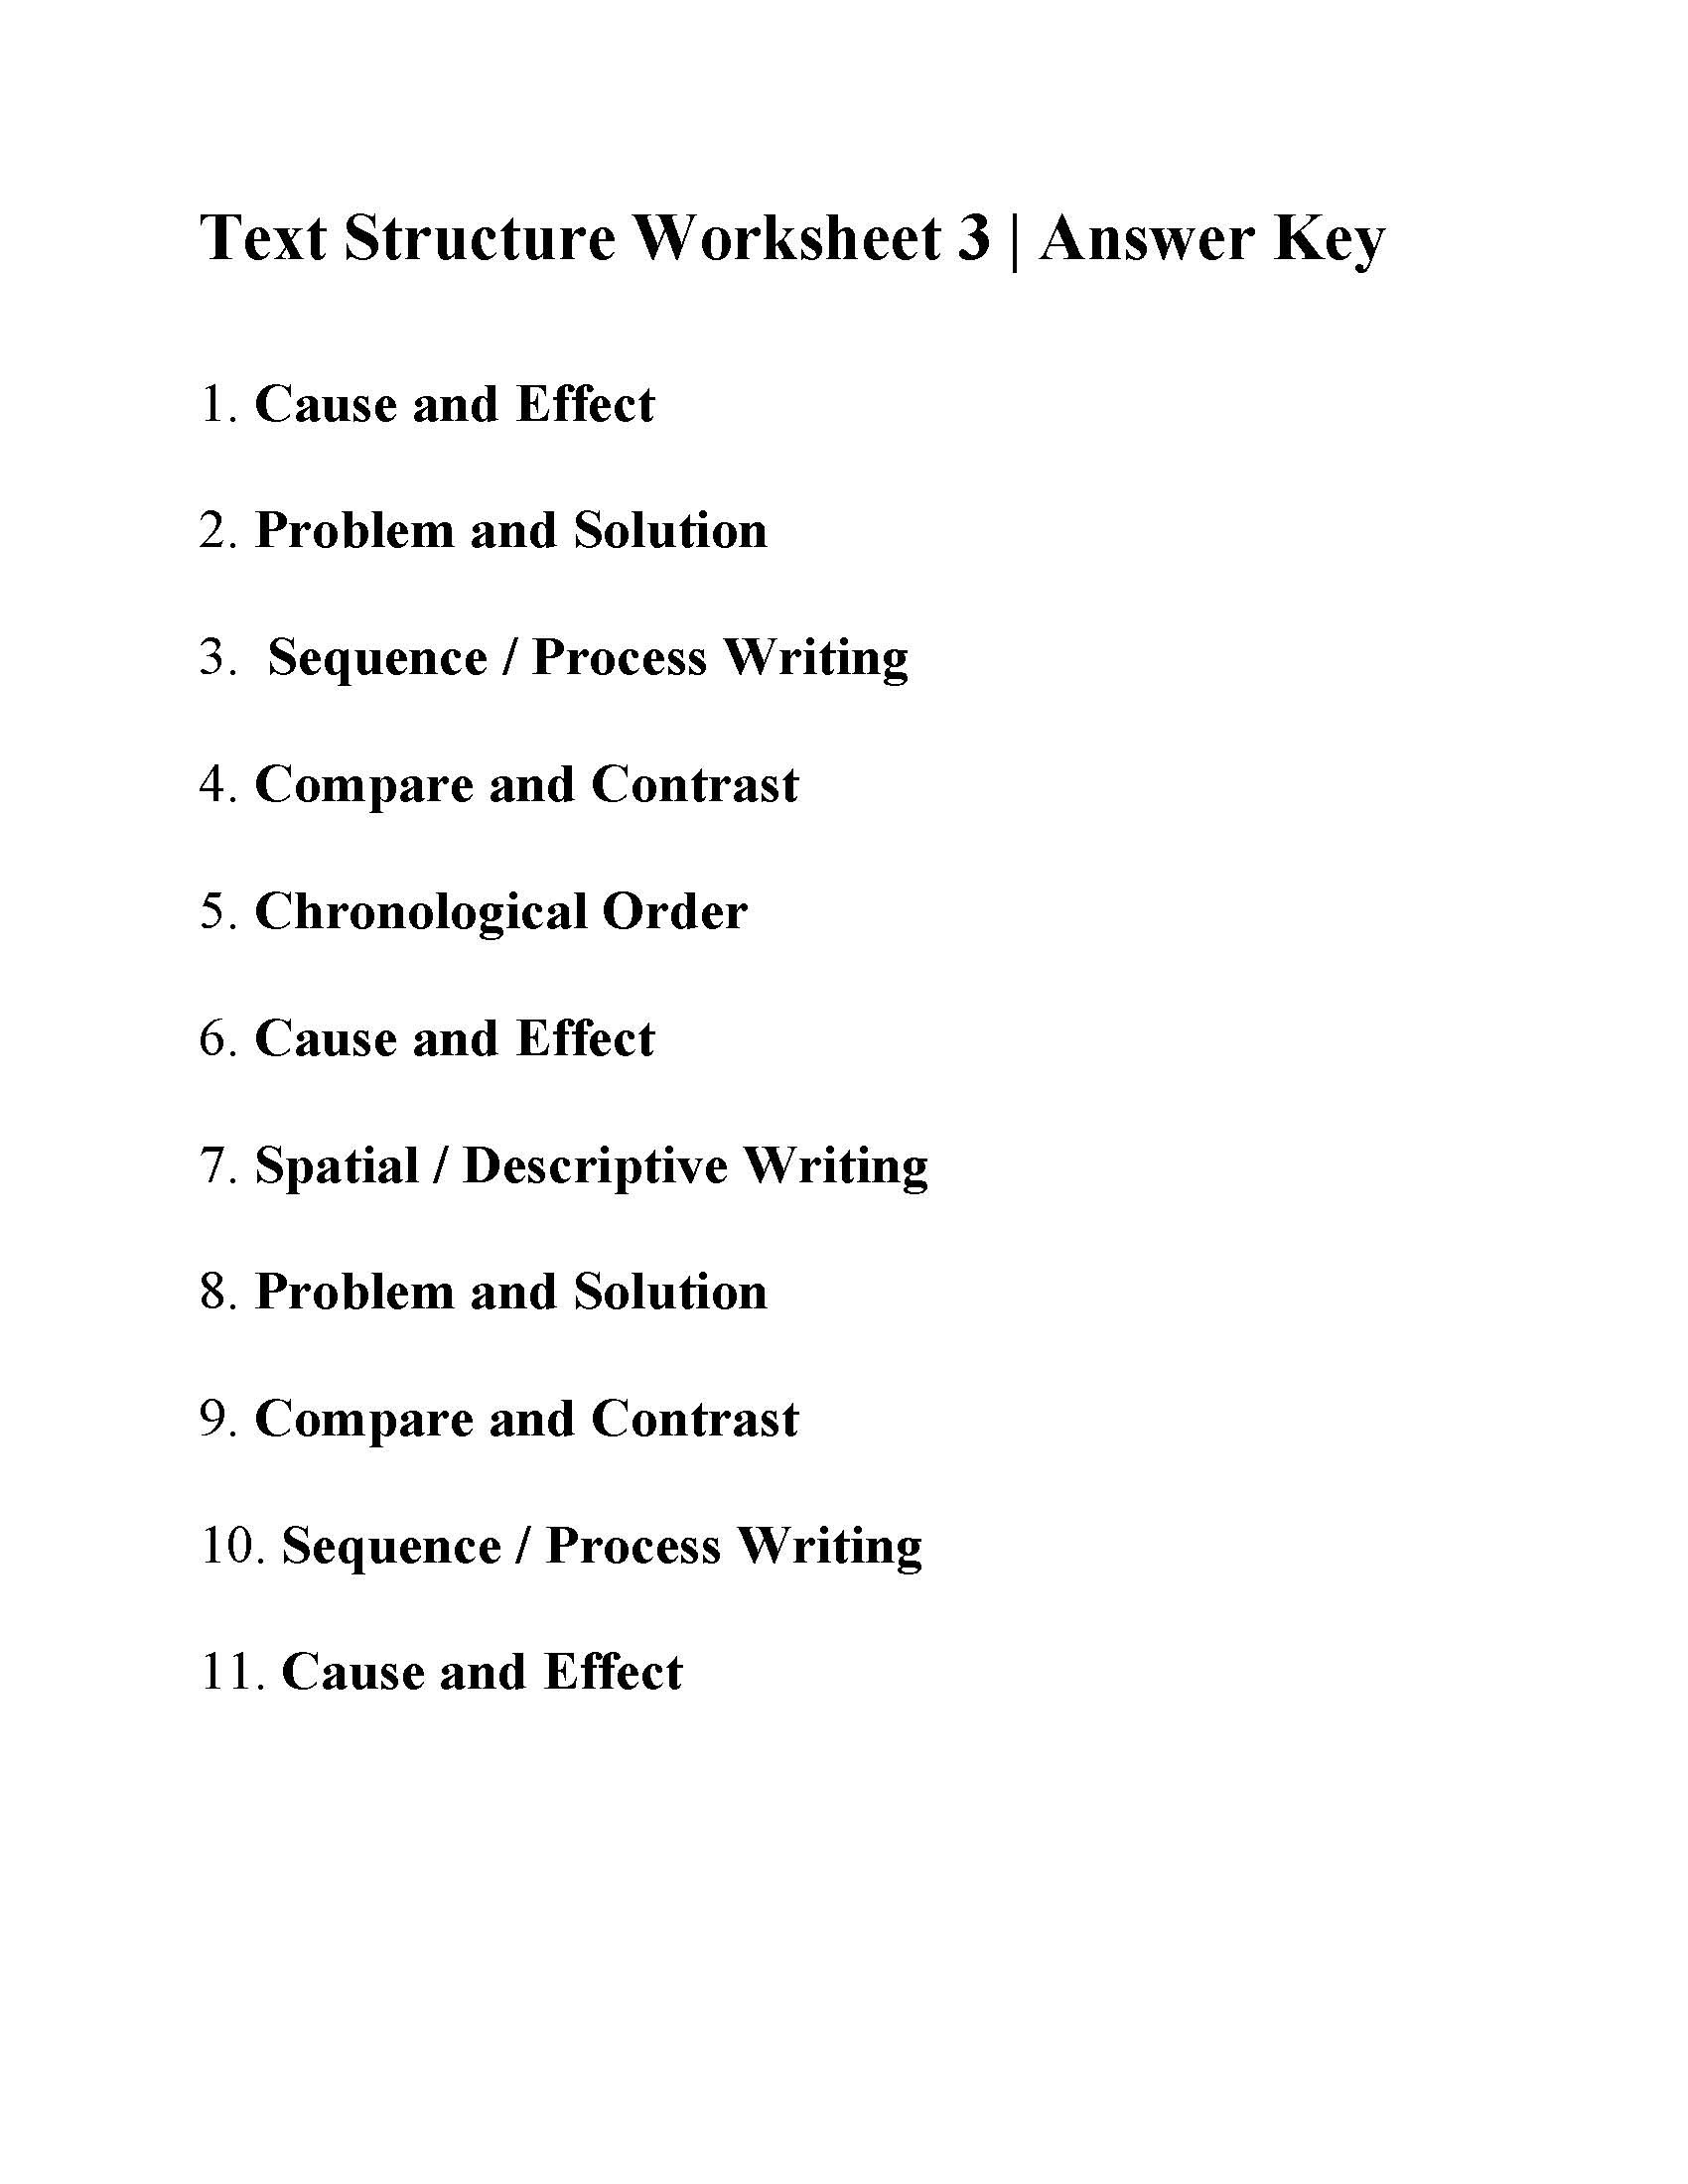 Text Structure 3rd Grade Worksheets Text Structure Worksheet 3